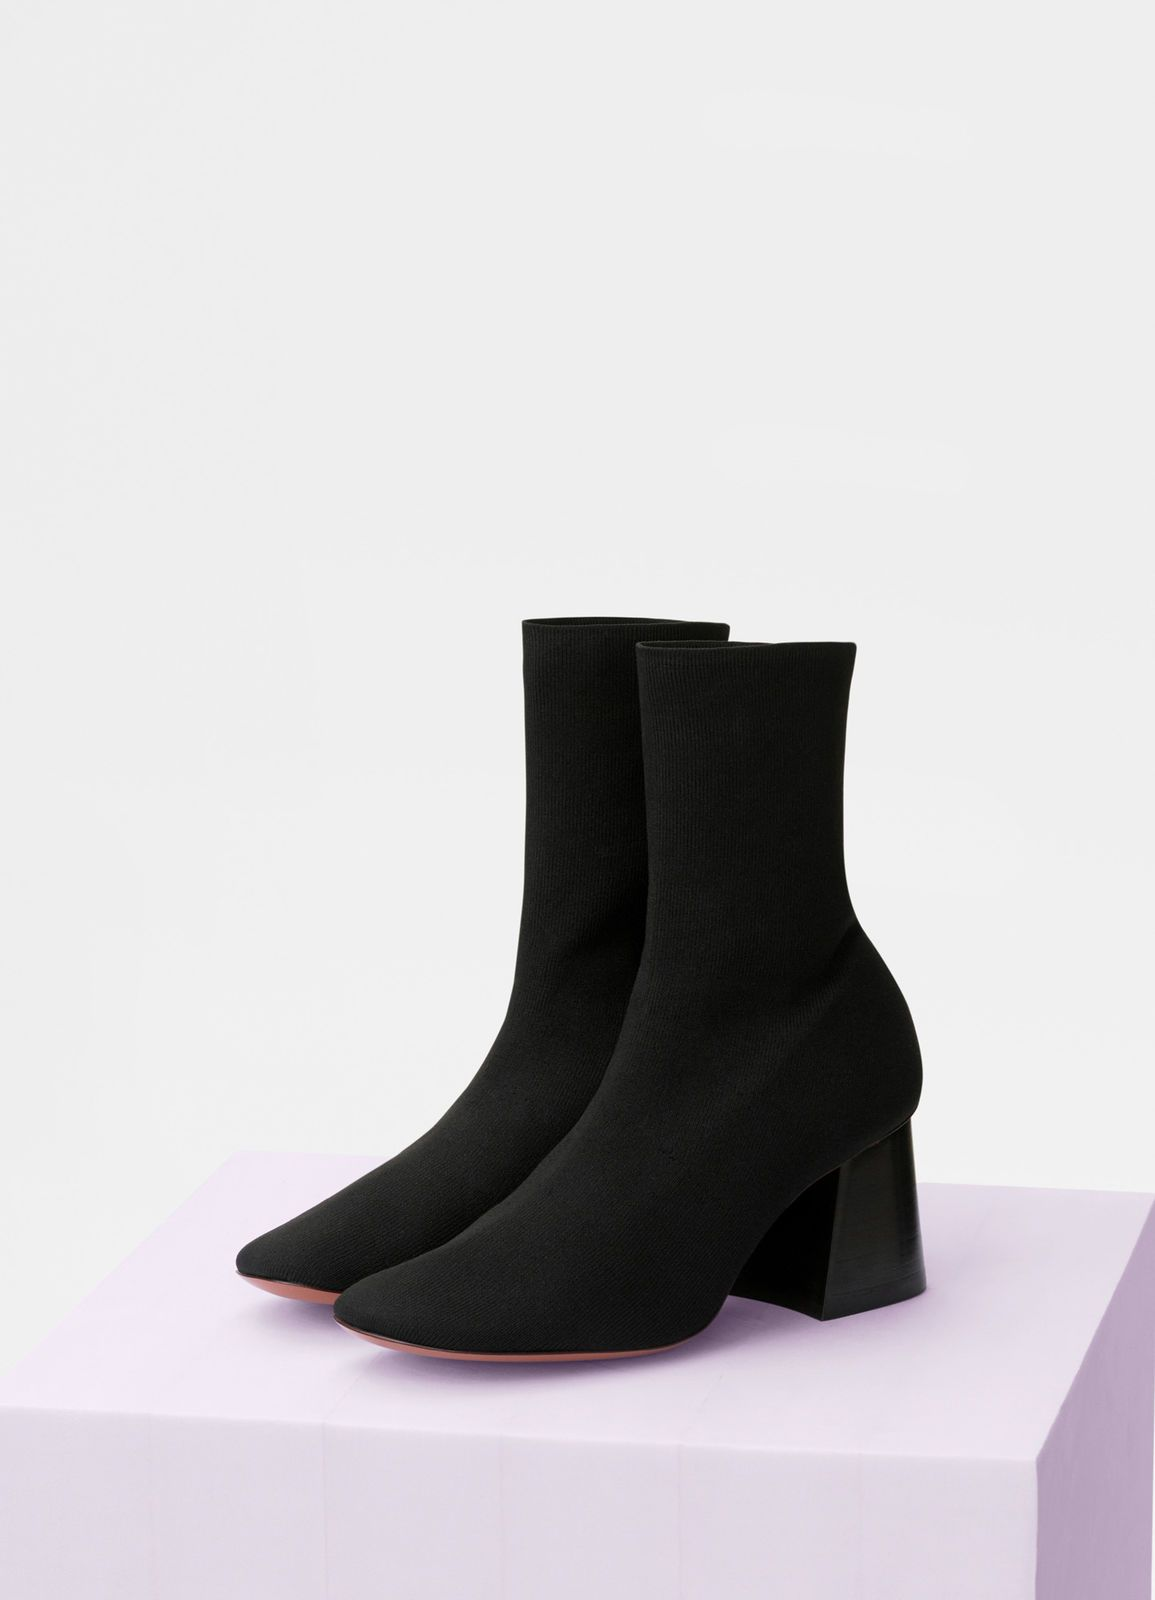 Ankle Boots Knit Sock Shoes Spring /& Autumn Ladies Flats Women Stretch Footwear